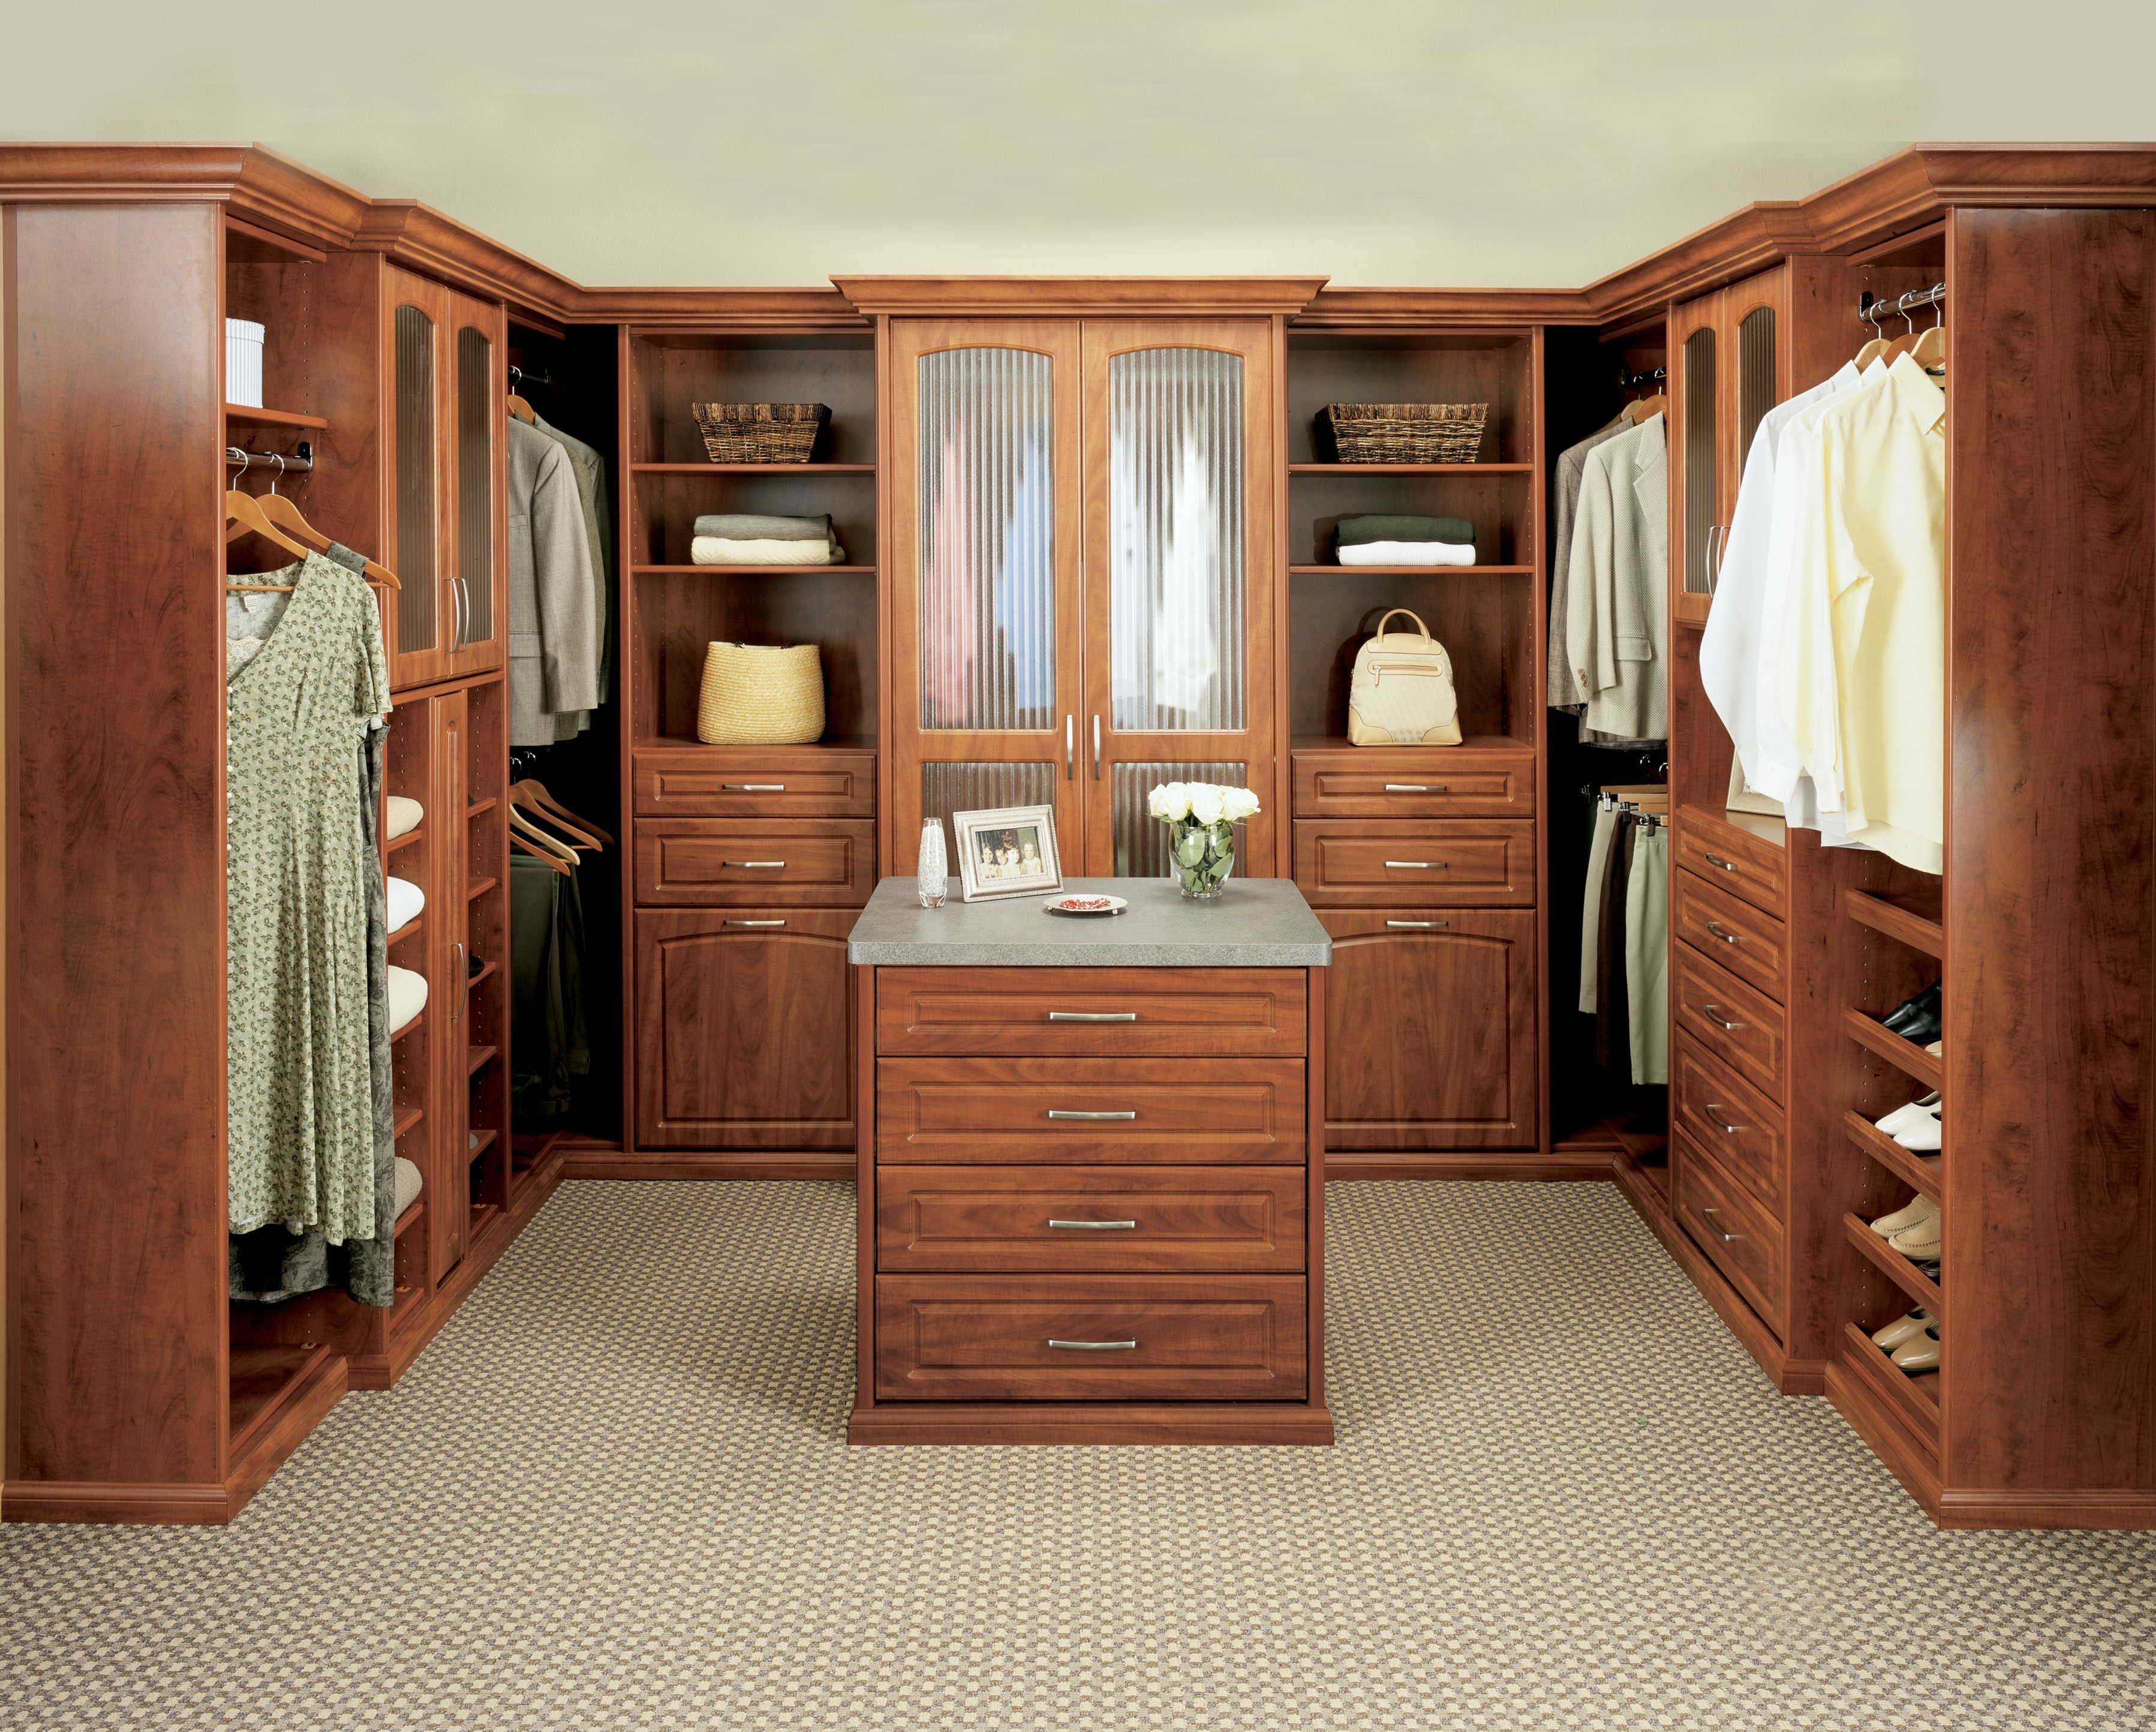 Regency Collection Walk In Closet In A Melamine Finish Deco Doors With Fluted Glass Deco Drawers Wood Closet Organizers Ikea Closet Organizer Closet Designs